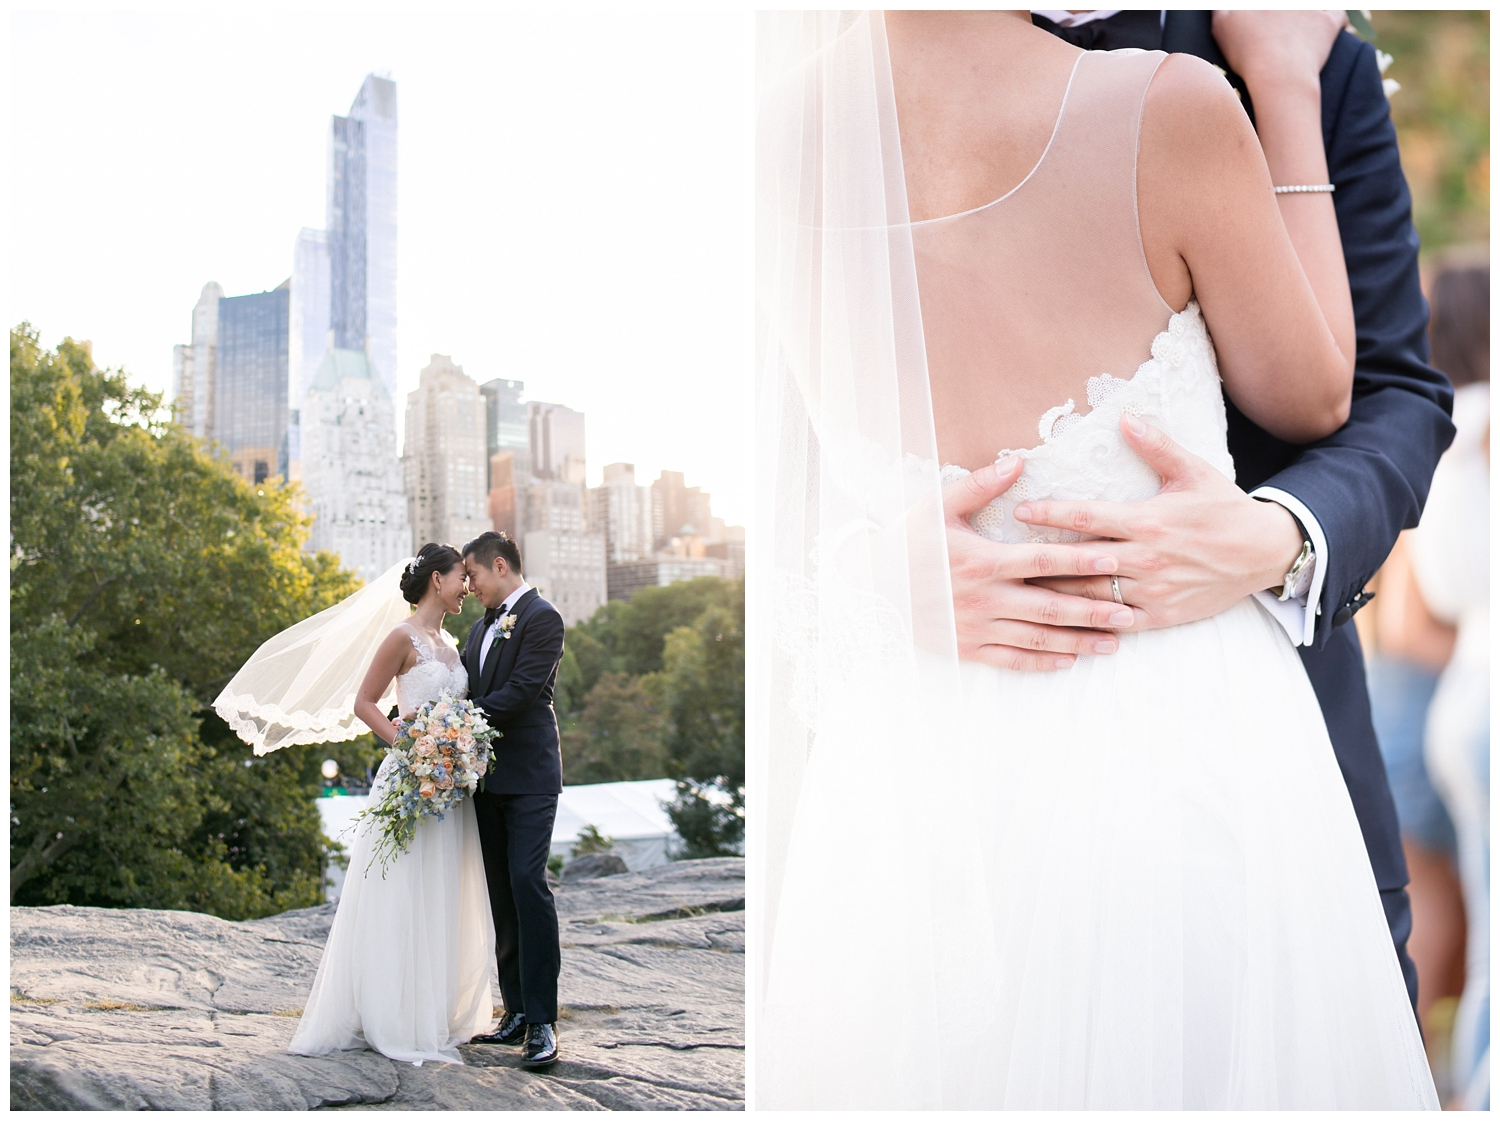 New York Weddings | Central Park Boathouse, New York | Real weddings, engagements and inspiration for the modern NY Bride | www.redoakweddings.com